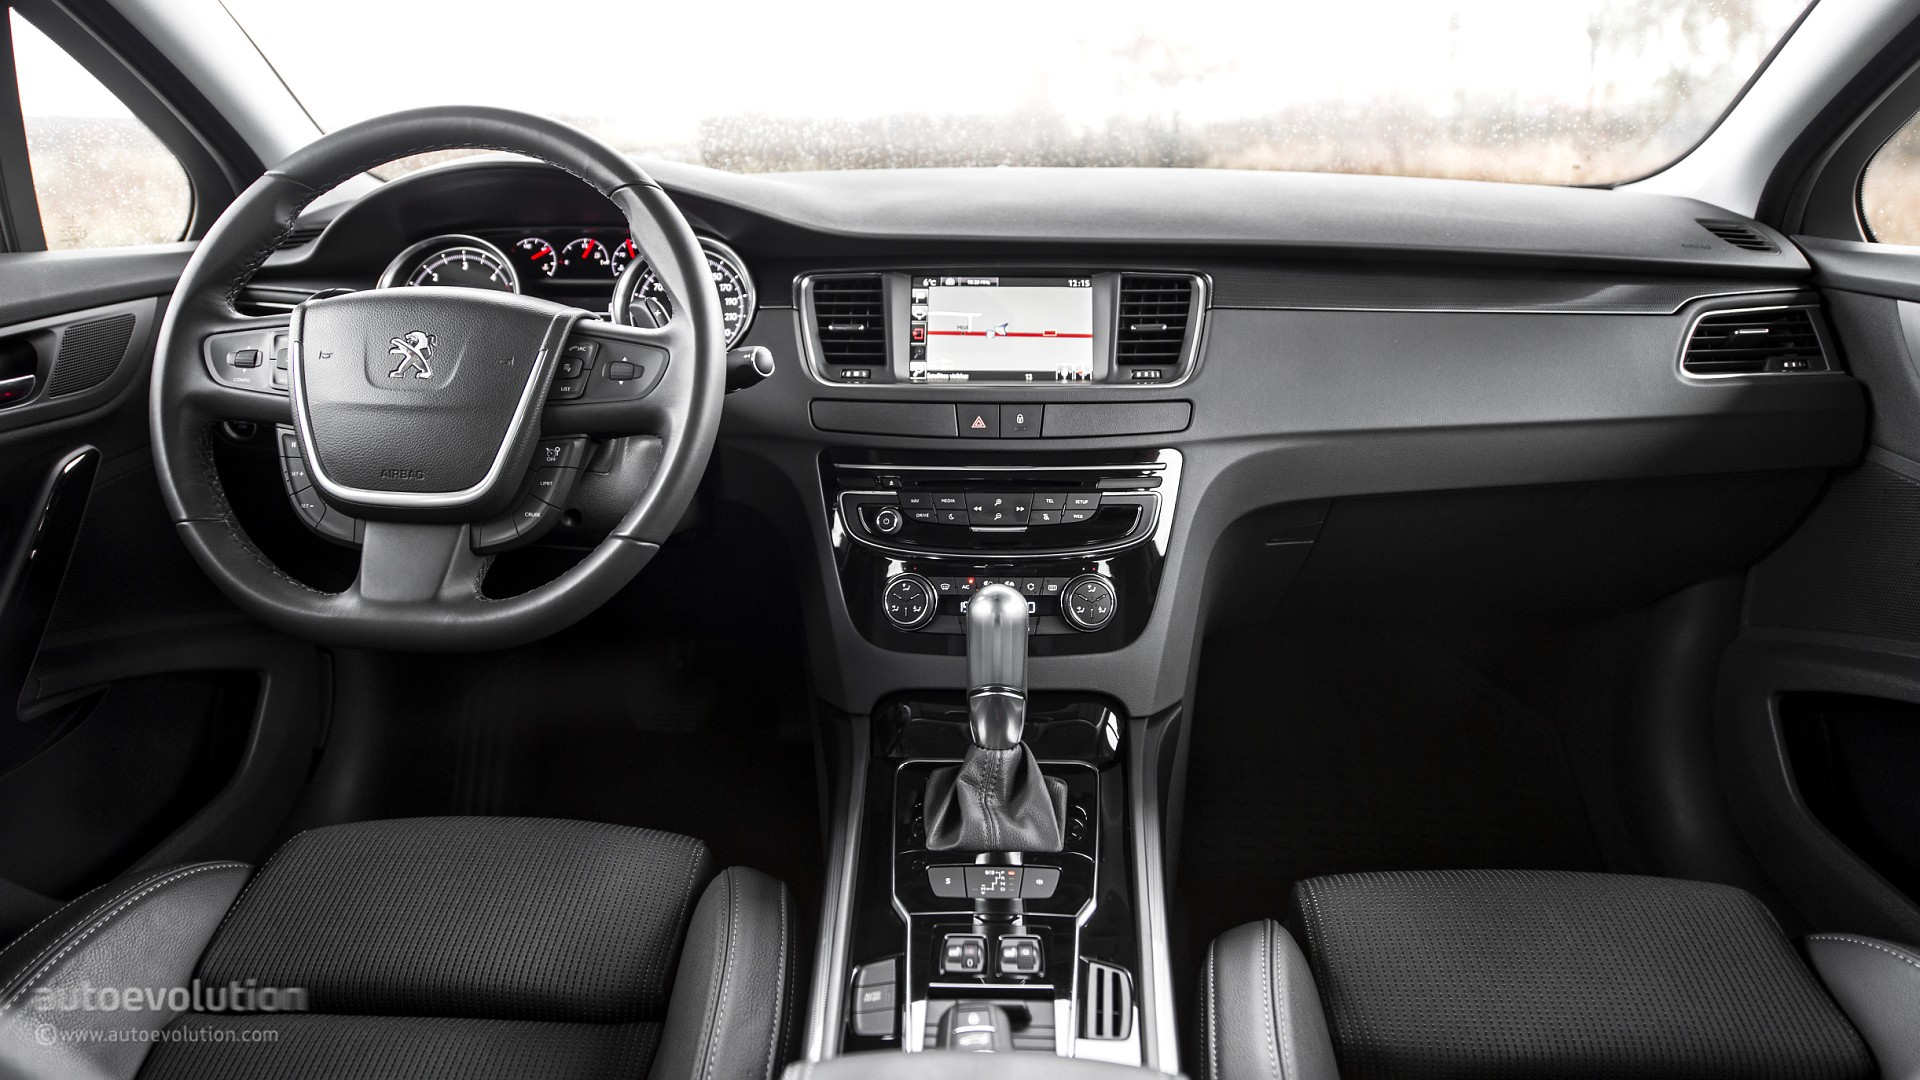 Image gallery peugeot 508 2015 for Interior 508 peugeot